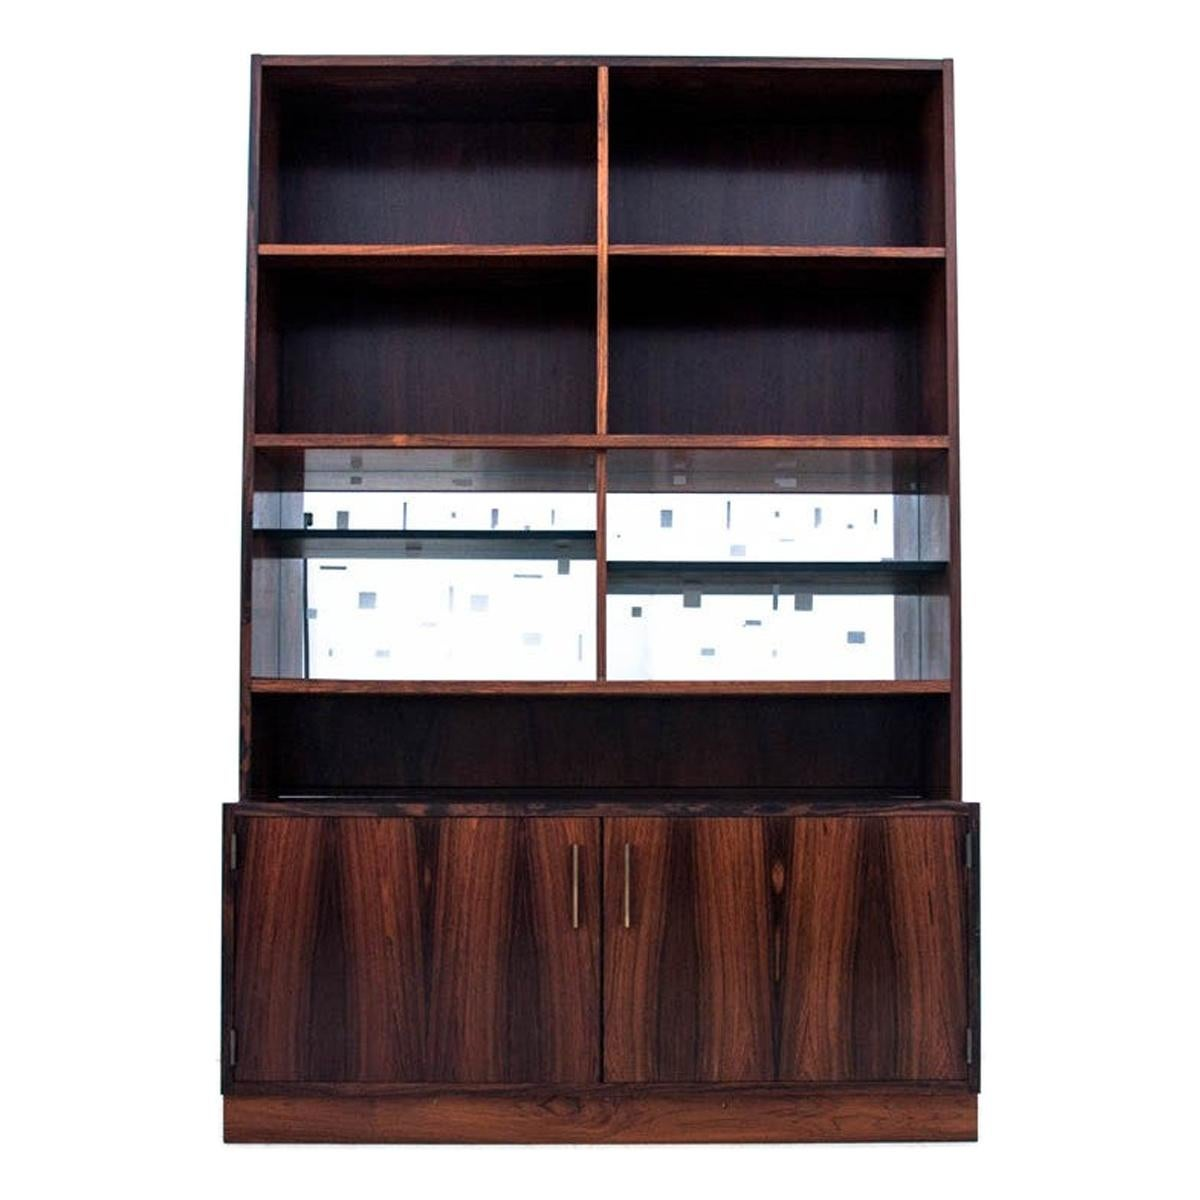 Bookcase with Mirrored Back, Rosewood, Danish Design, 1960s